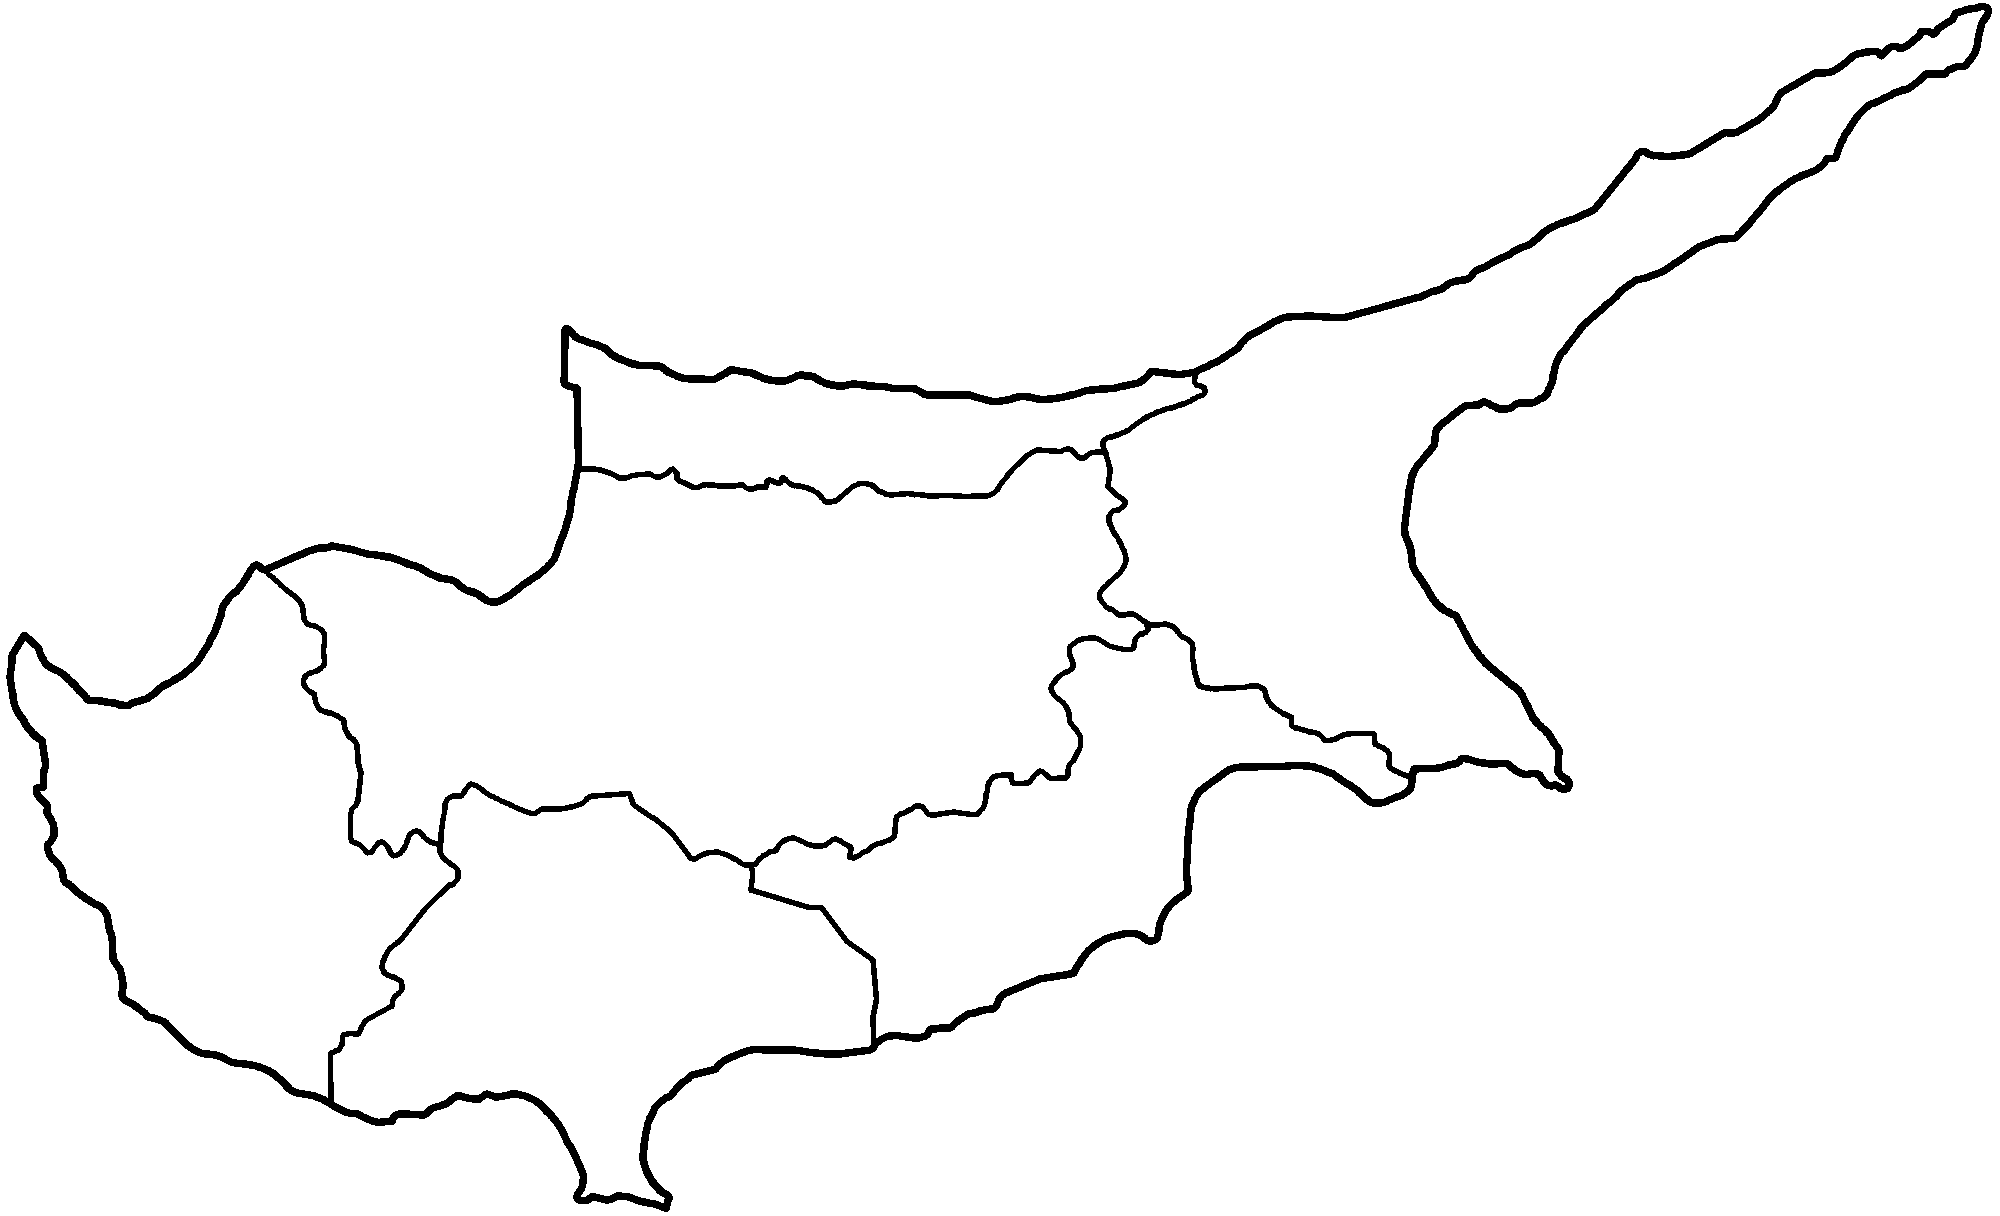 FileCyprus Districts Only Blankpng Wikimedia Commons - Cyprus blank map